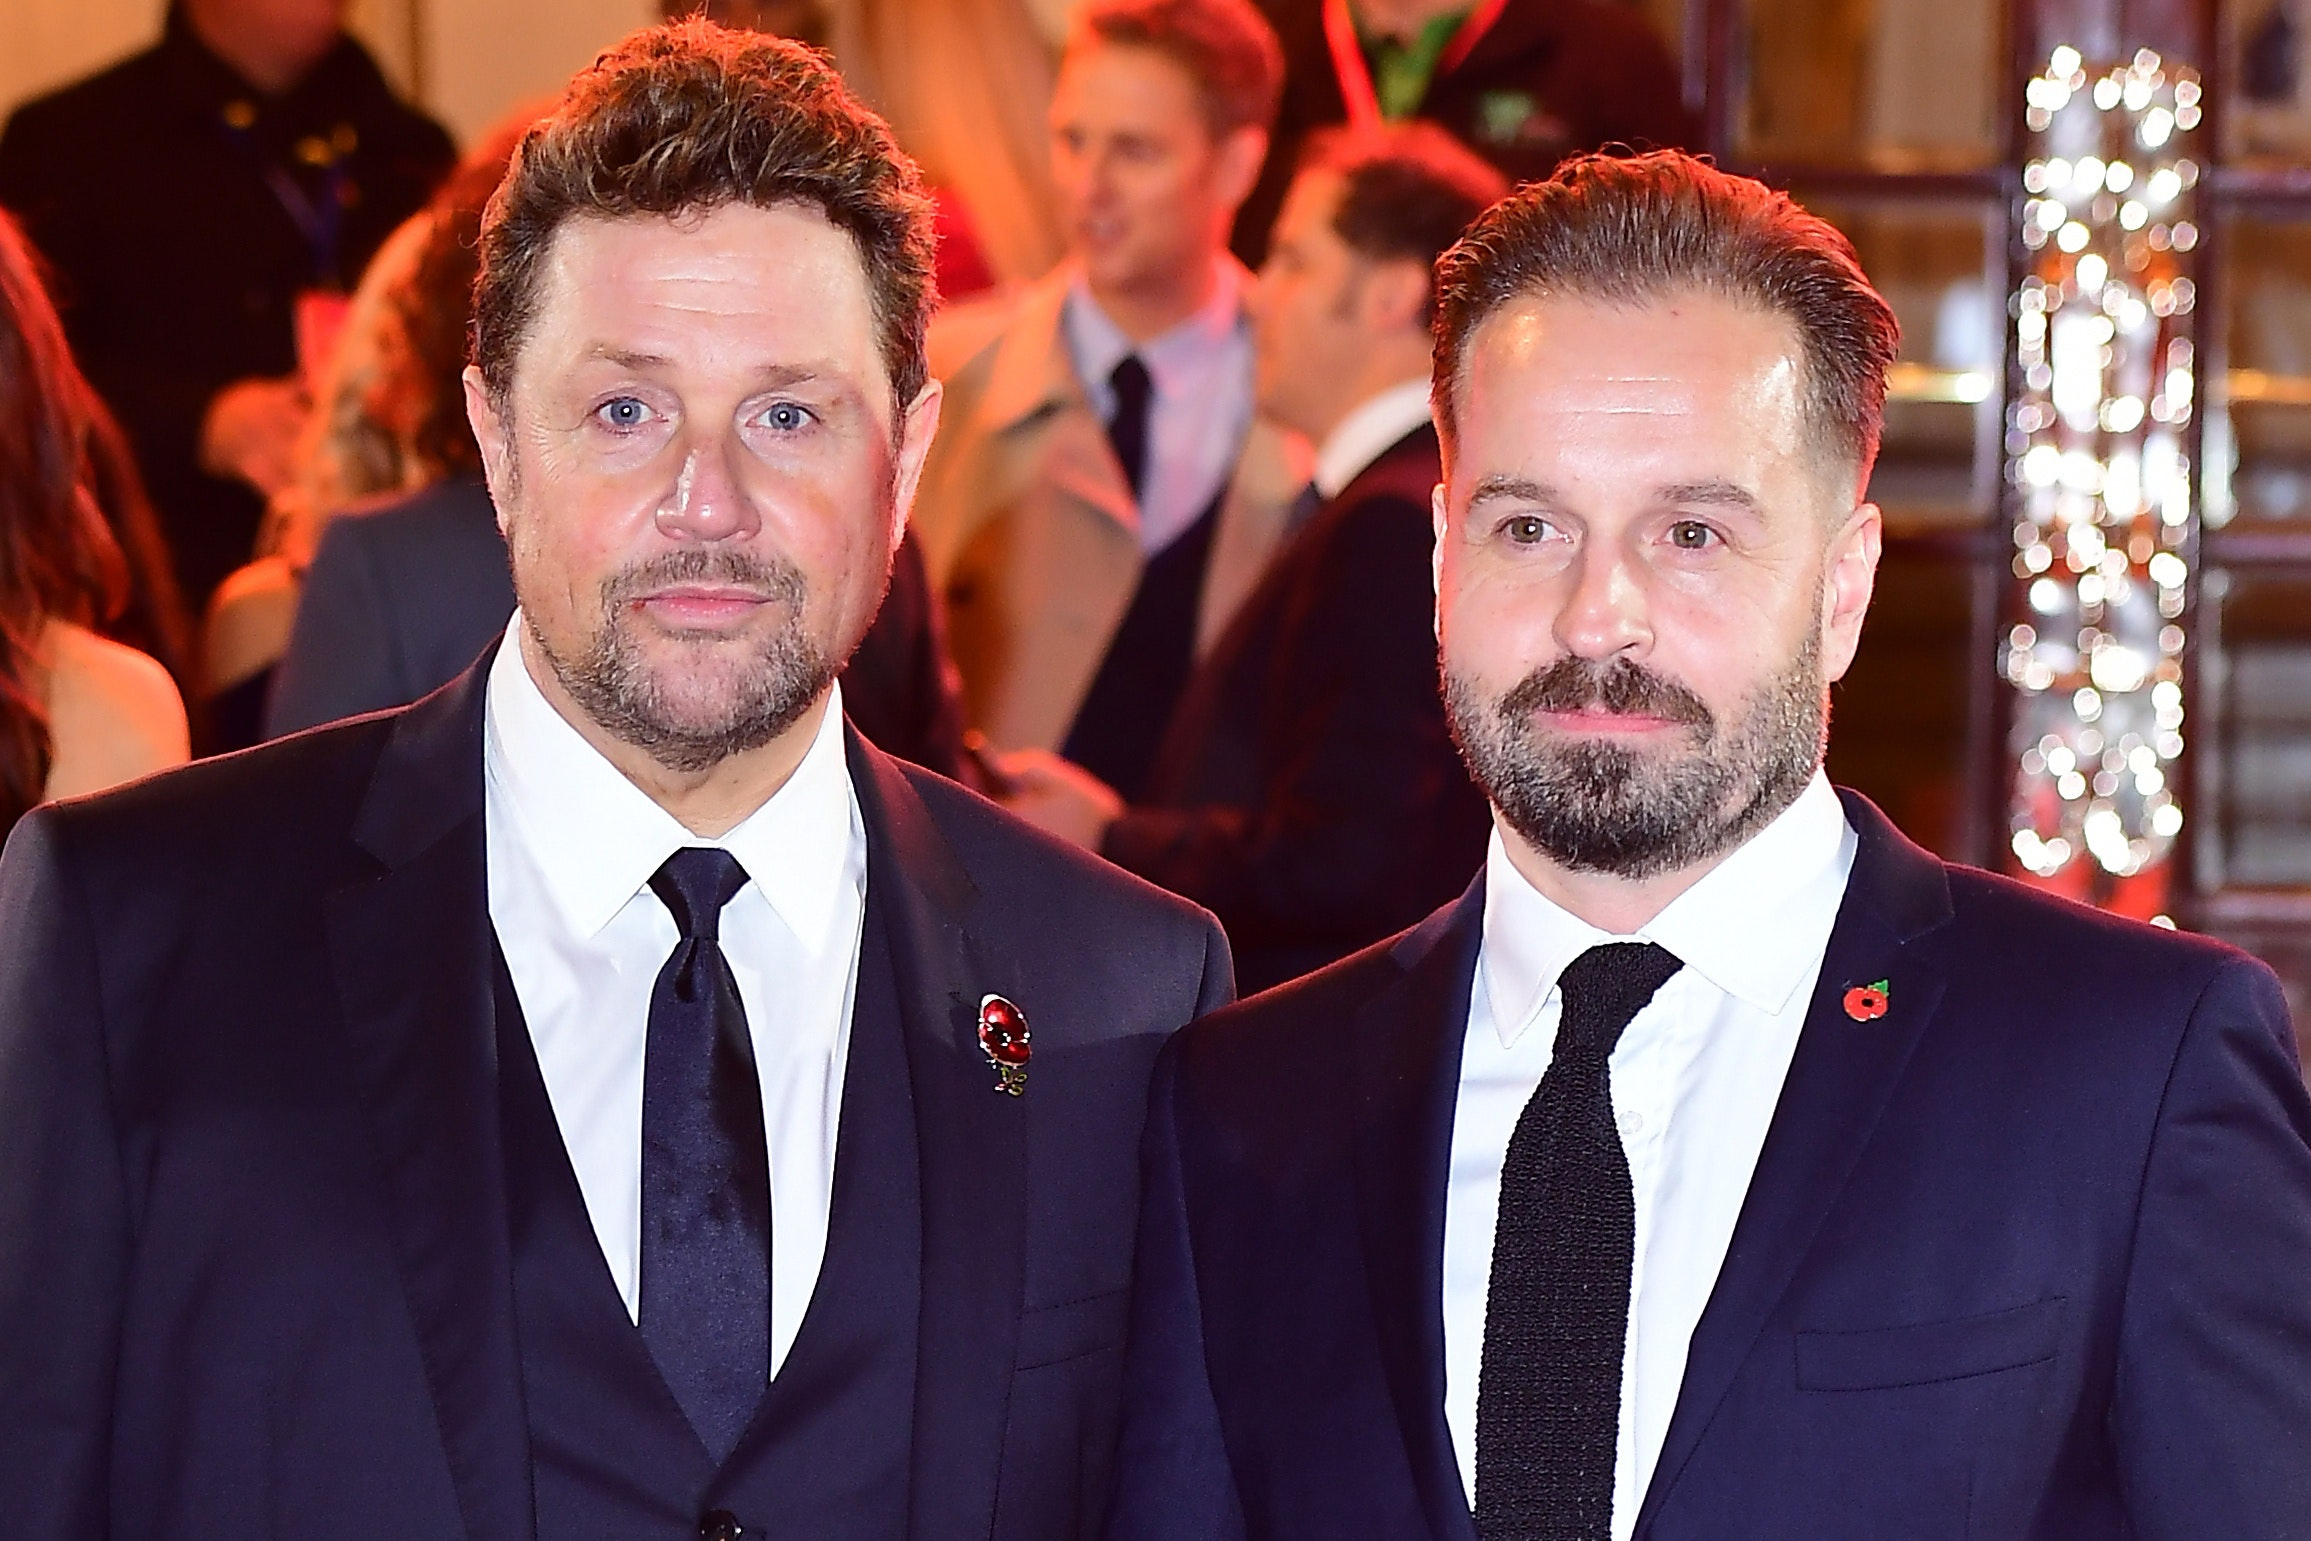 Michael Ball and Alfie Boe muse over Downton Abbey musical (Ian West/PA)